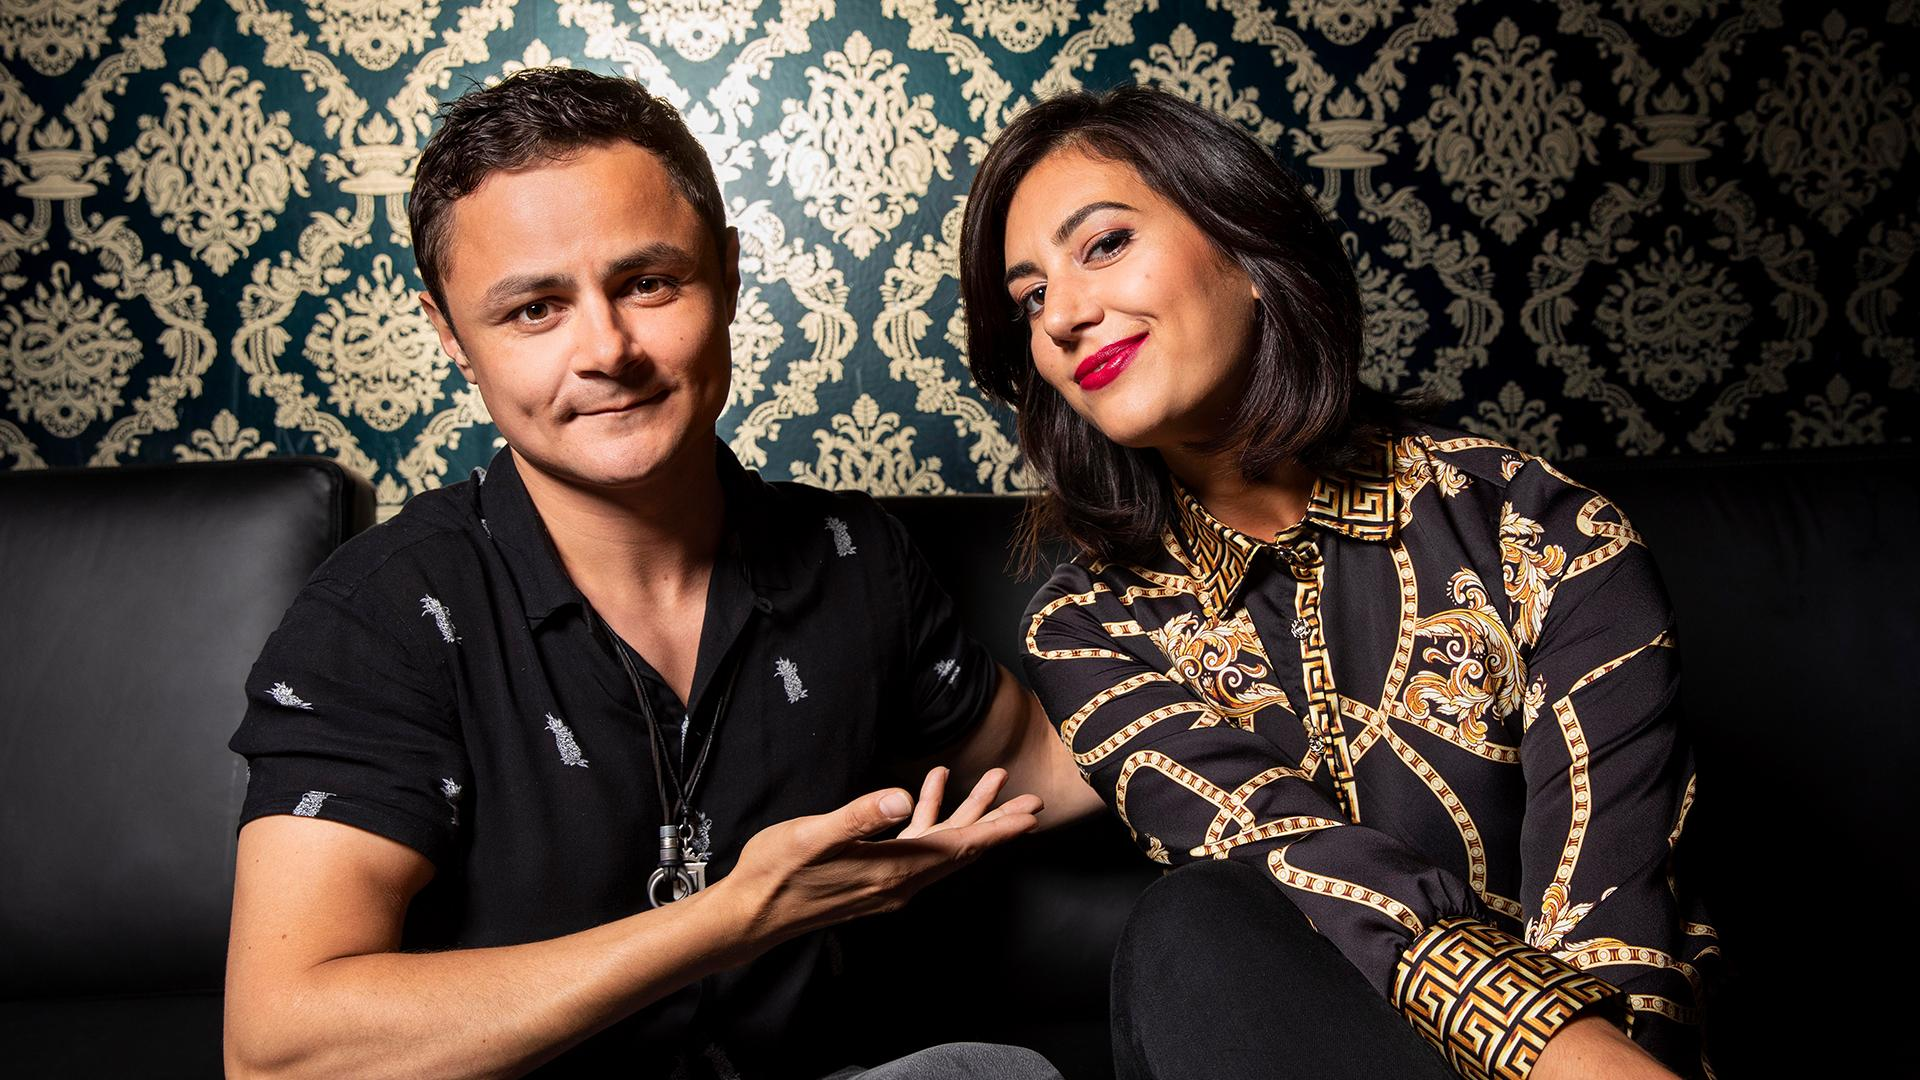 Arturo Castro Says Getting Political With His Show Was A 'Responsibility'